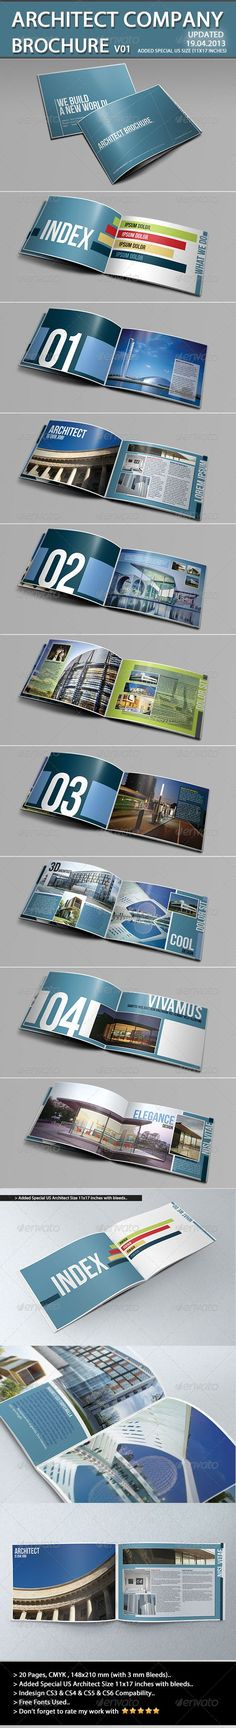 Architecture Brochure Template - Portfolio Brochures. If you like UX, design, or design thinking, check out theuxblog.com